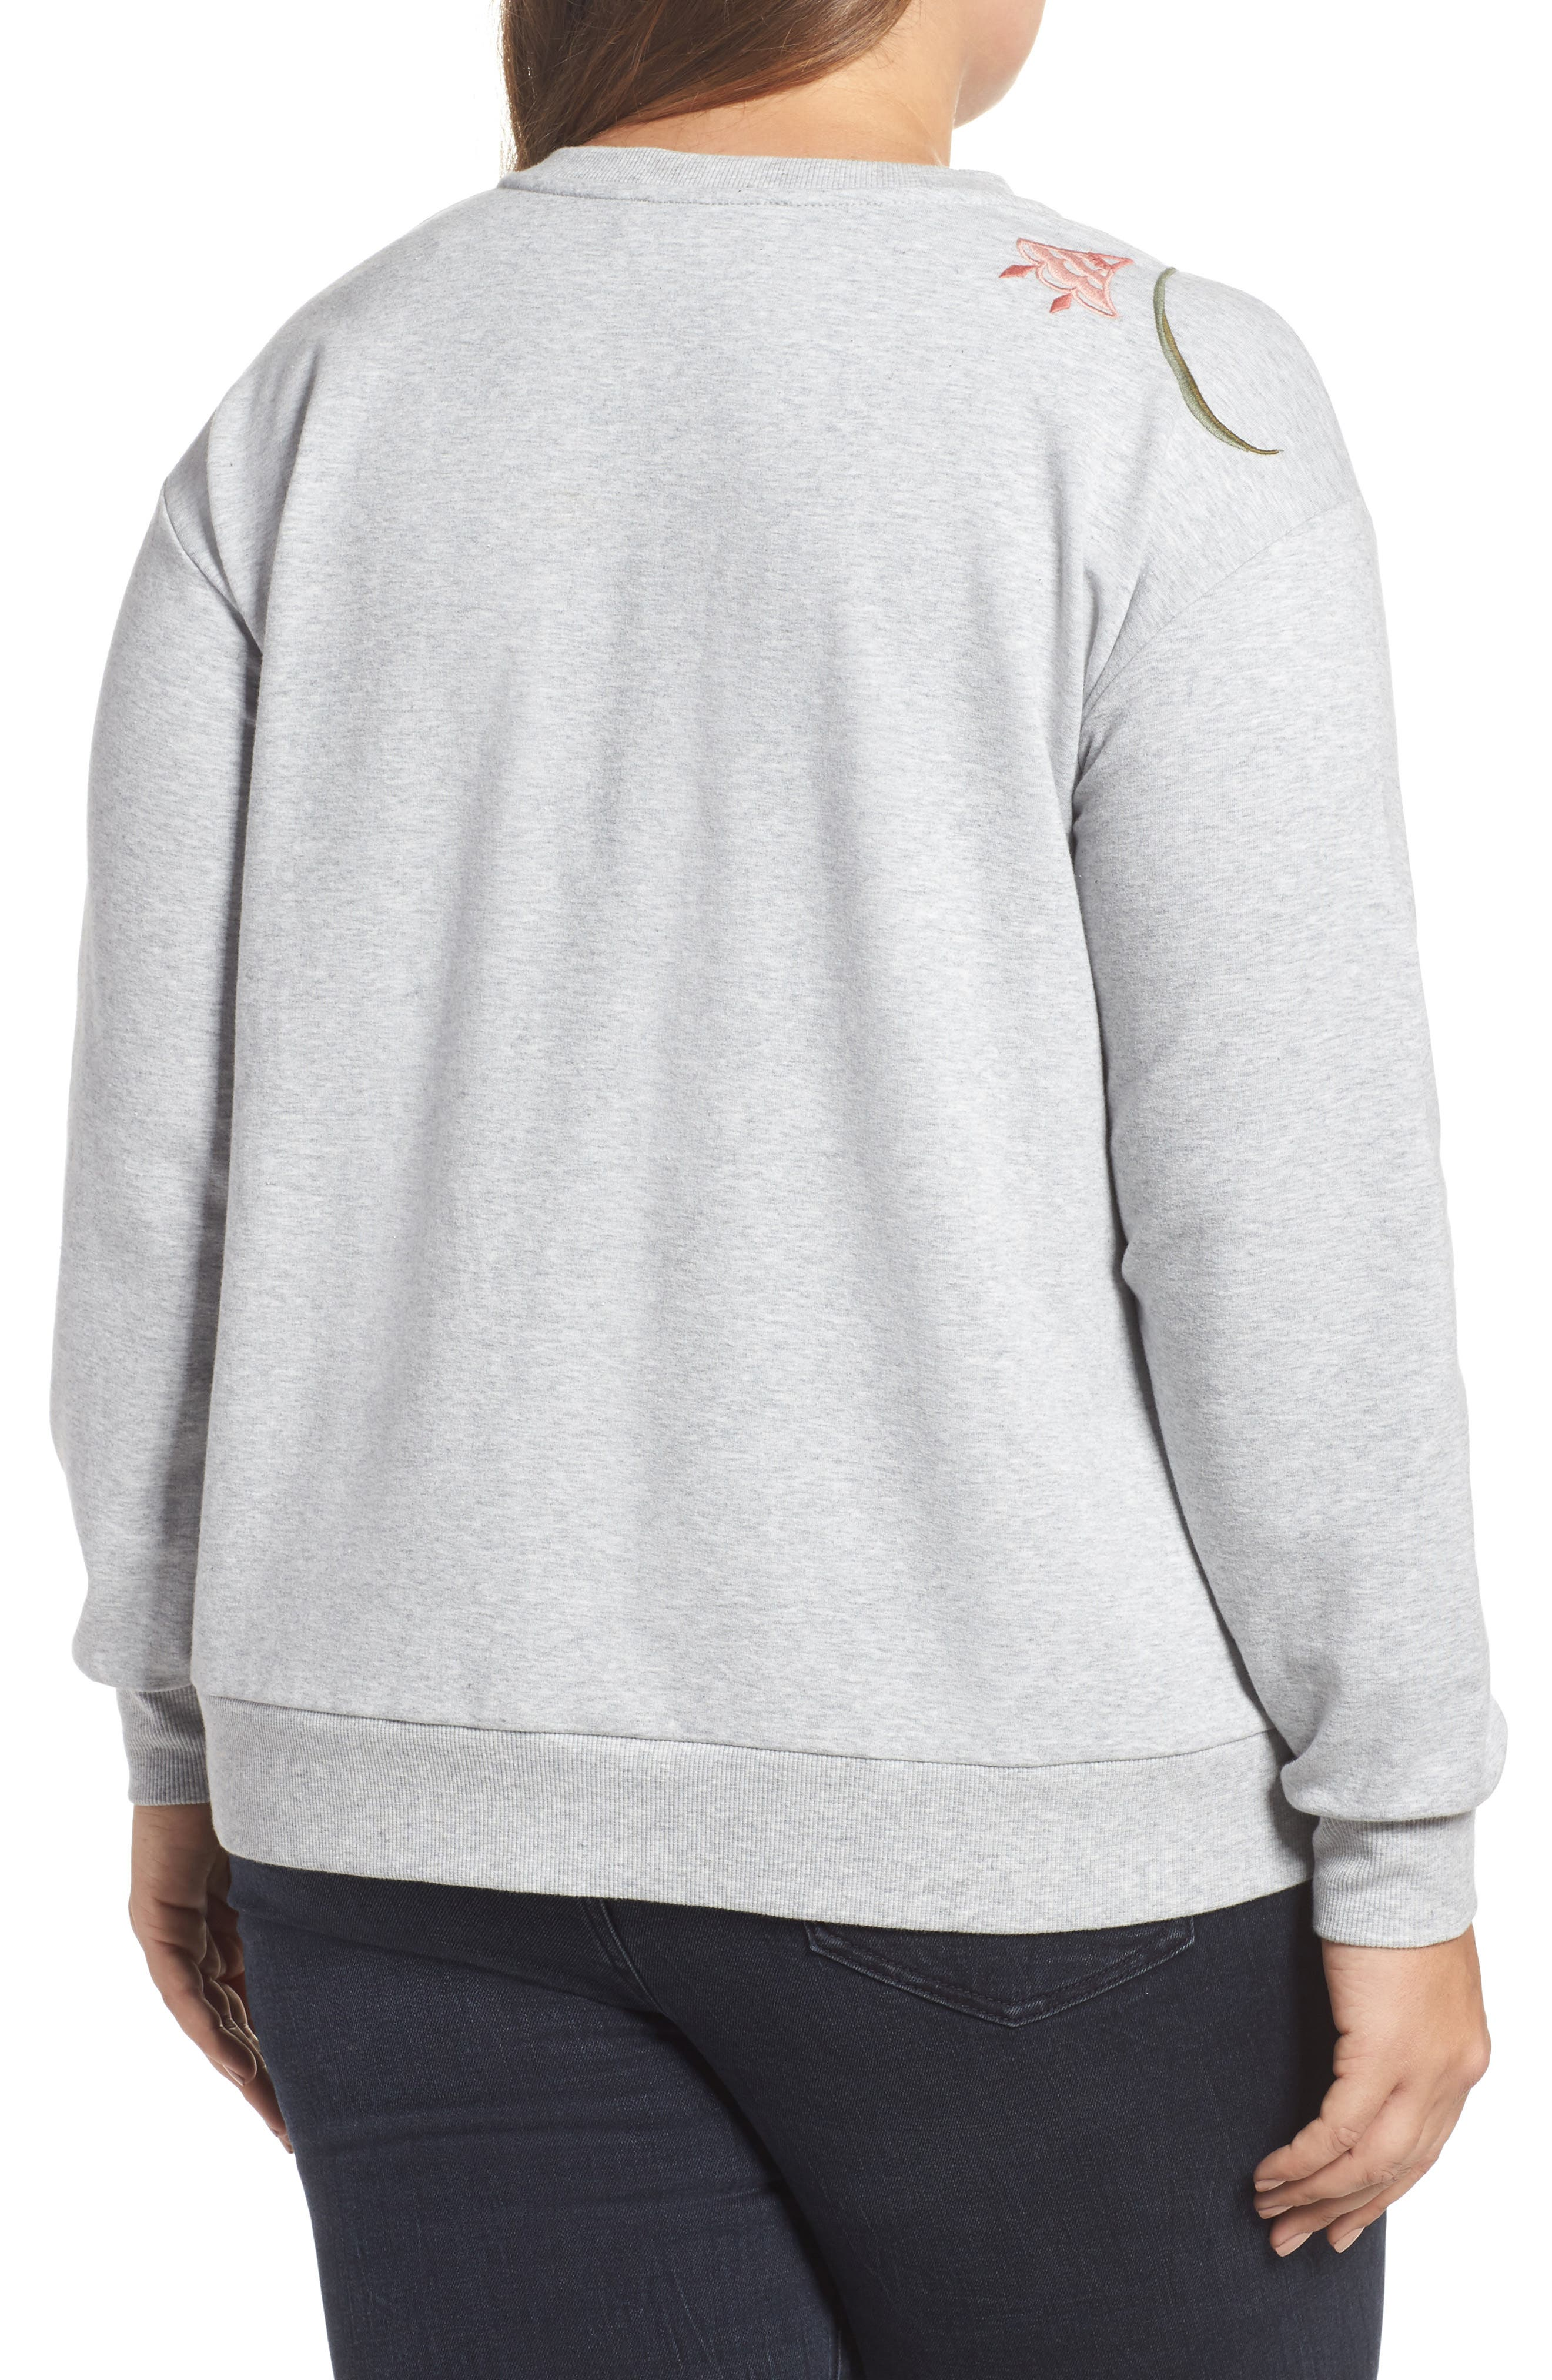 Embroidered Sweatshirt,                             Alternate thumbnail 2, color,